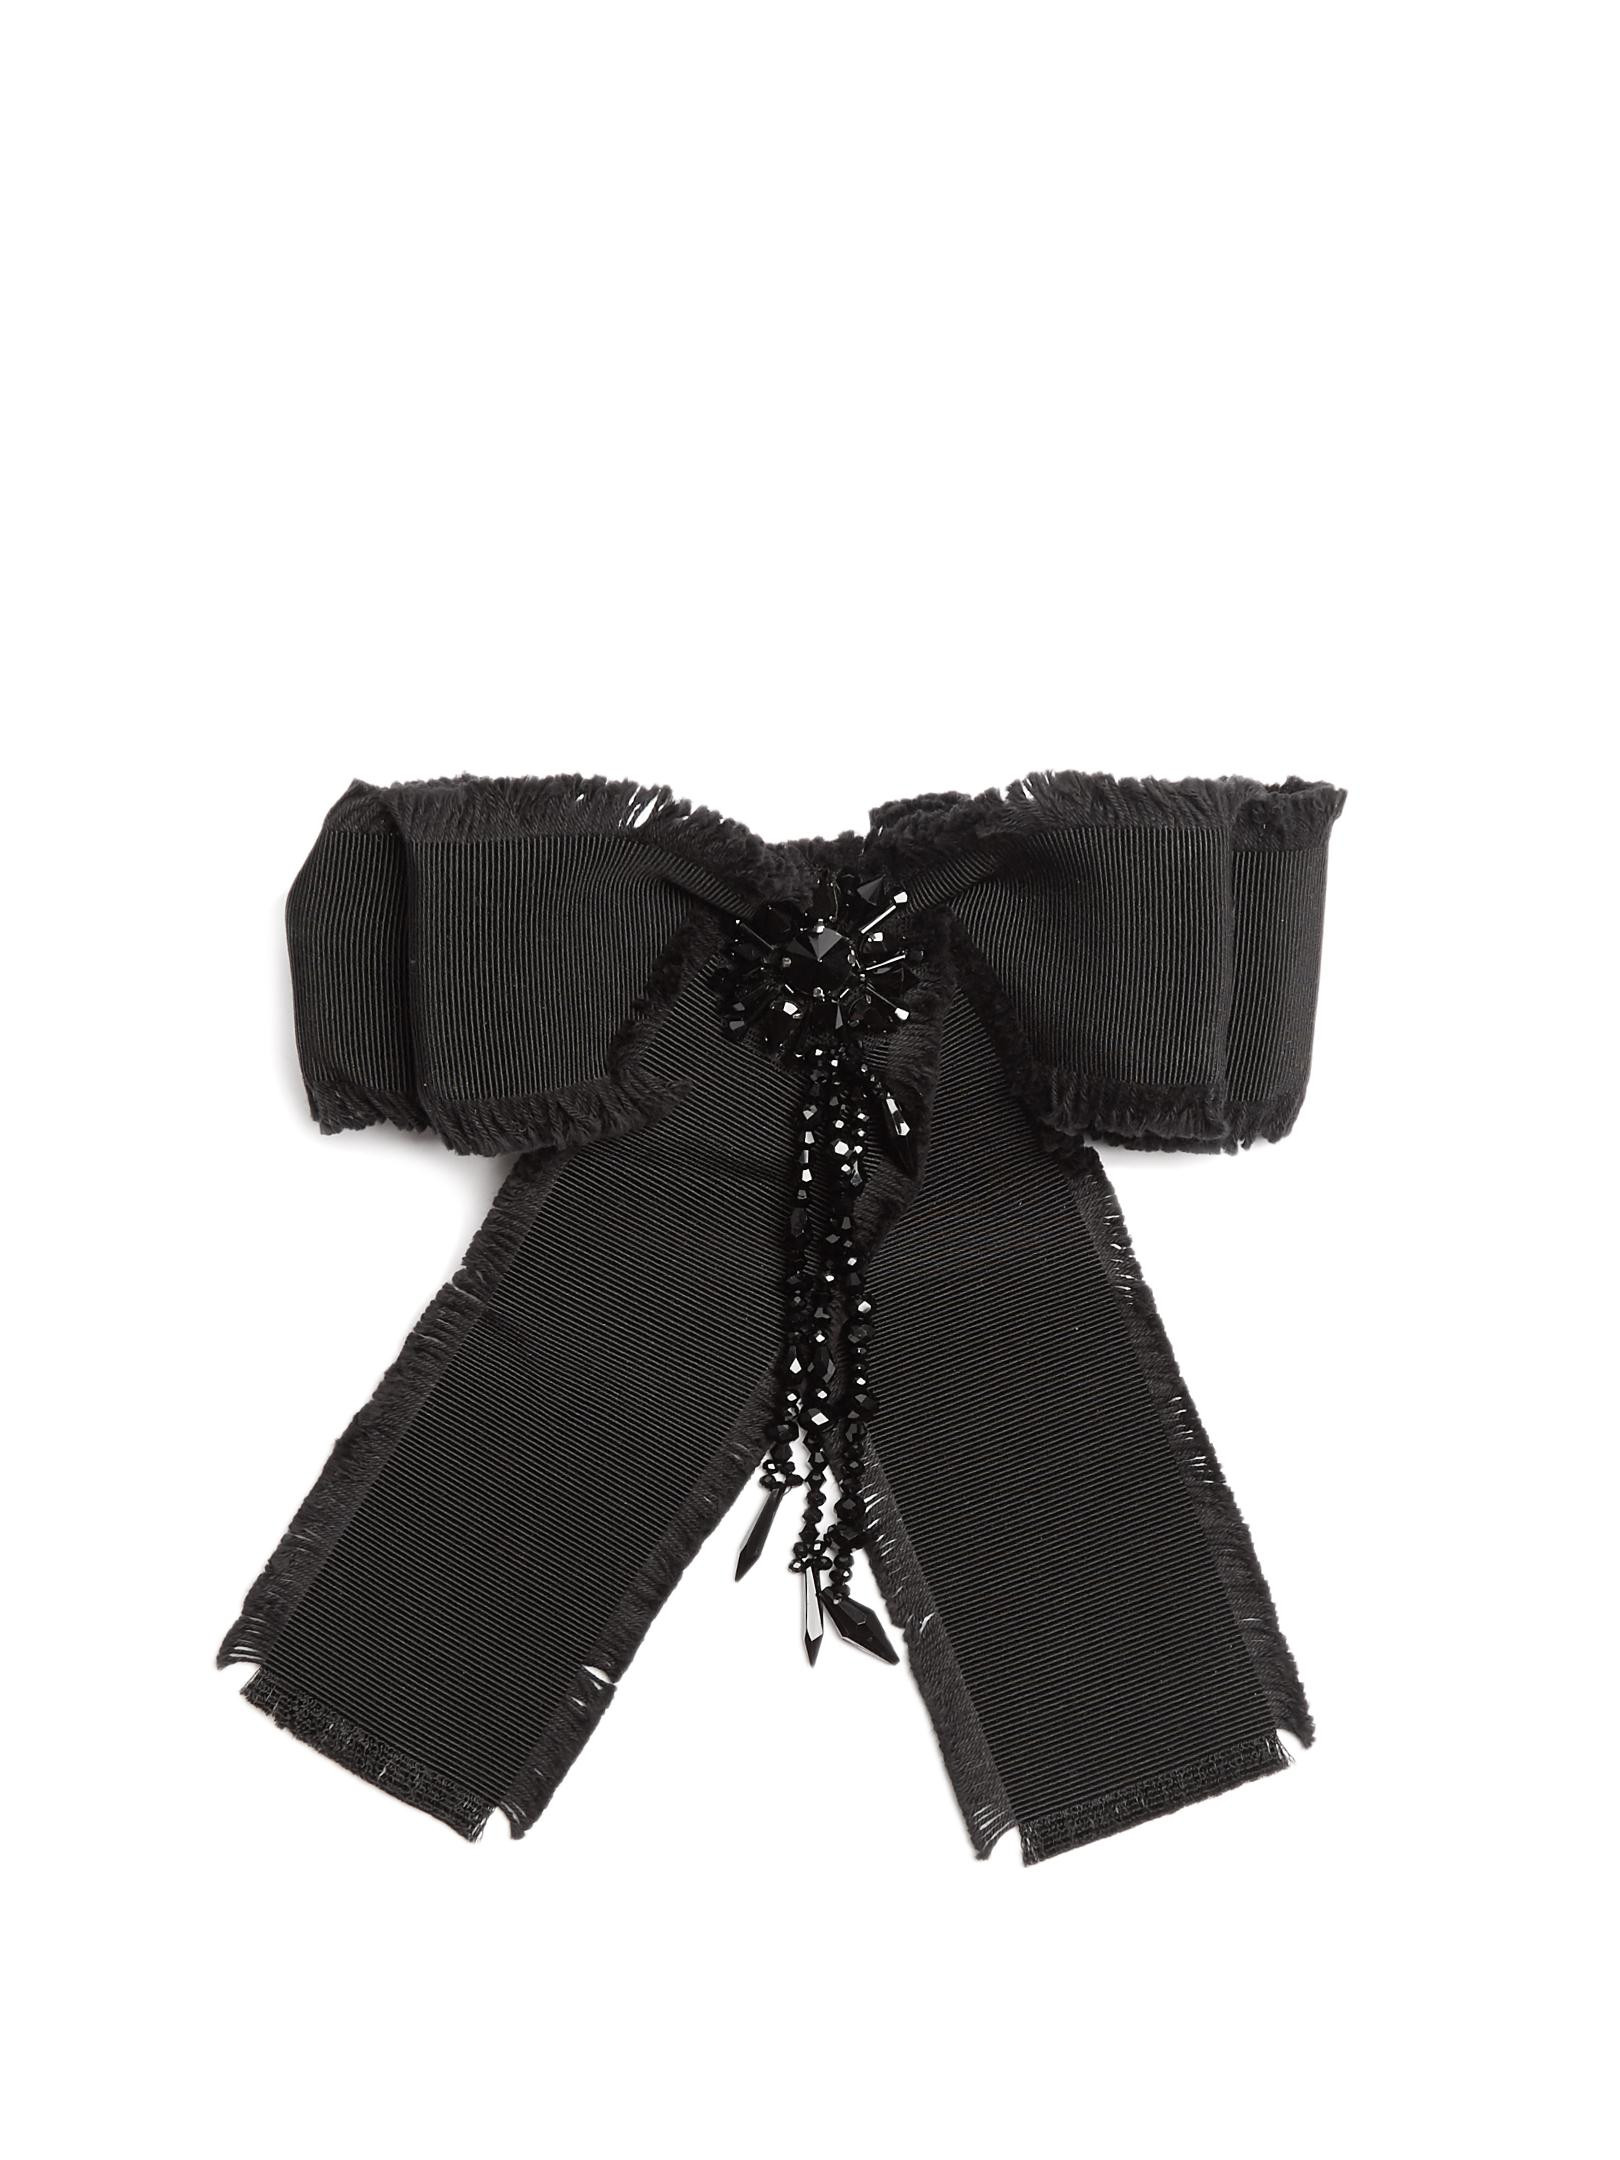 Gucci Brooches  Lyst Gucci Bead embellished Bow Brooch in Black